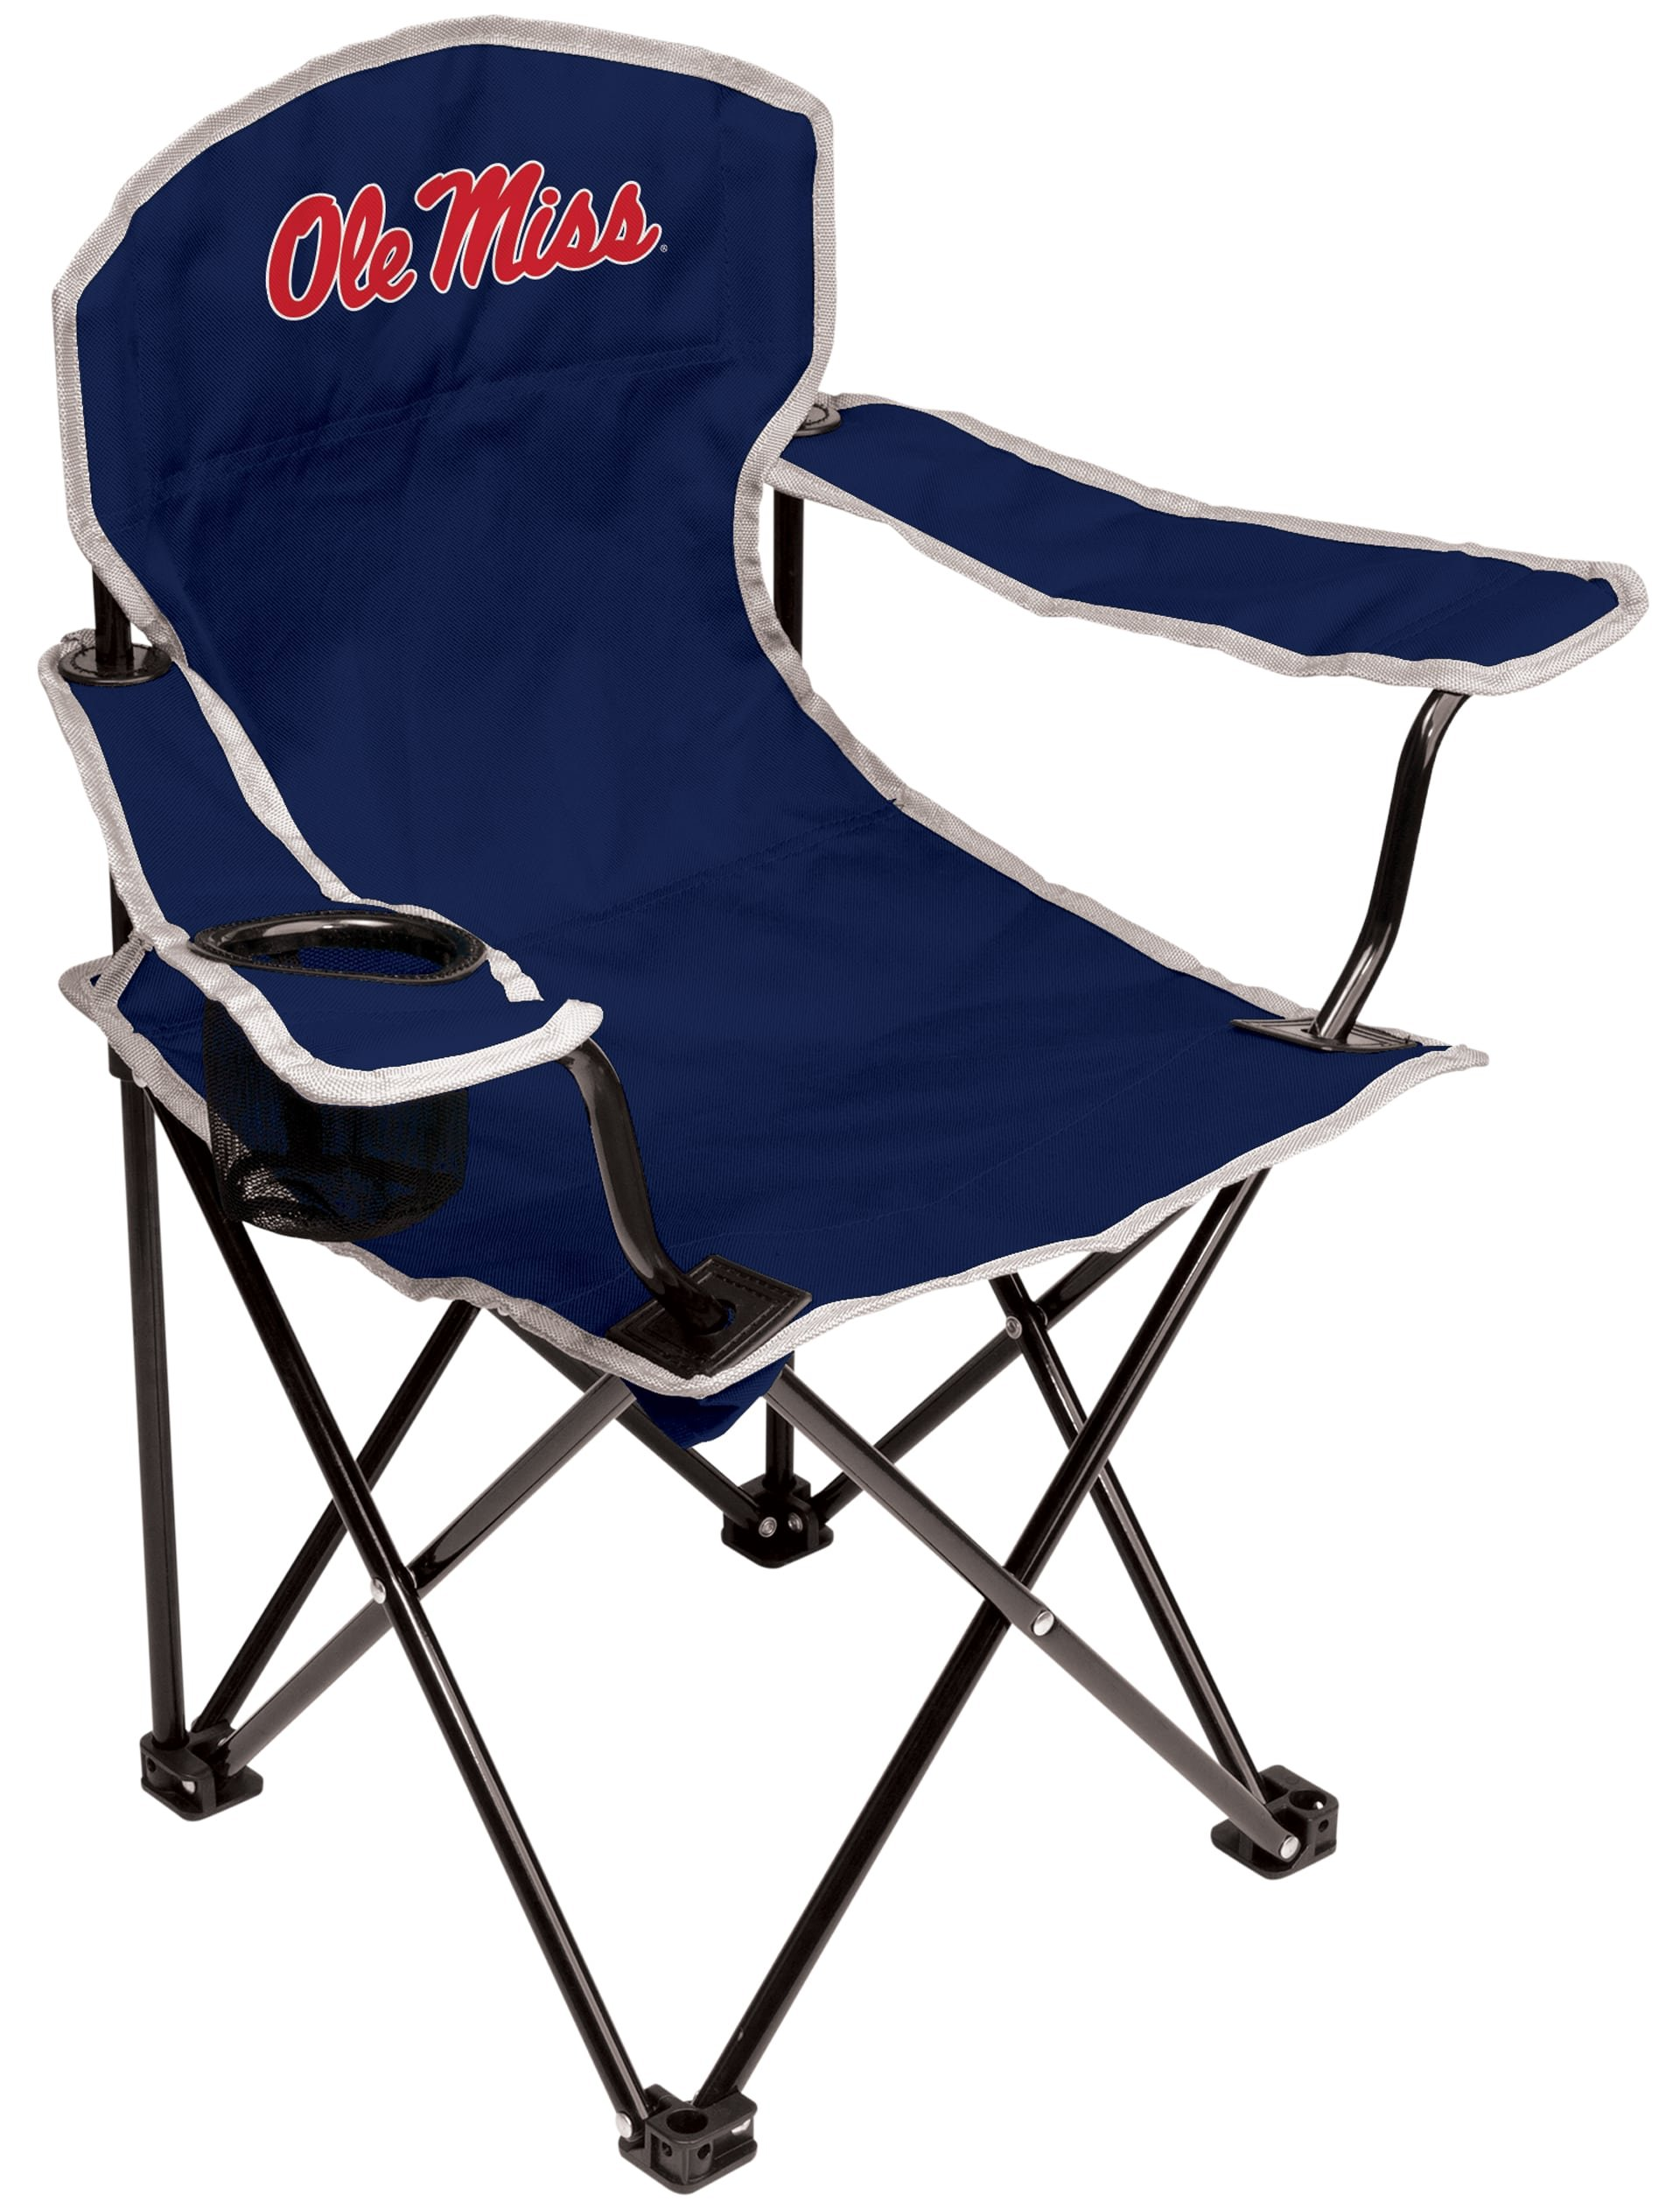 NCAA Mississippi Old Miss Rebels Youth Folding Chair, Red